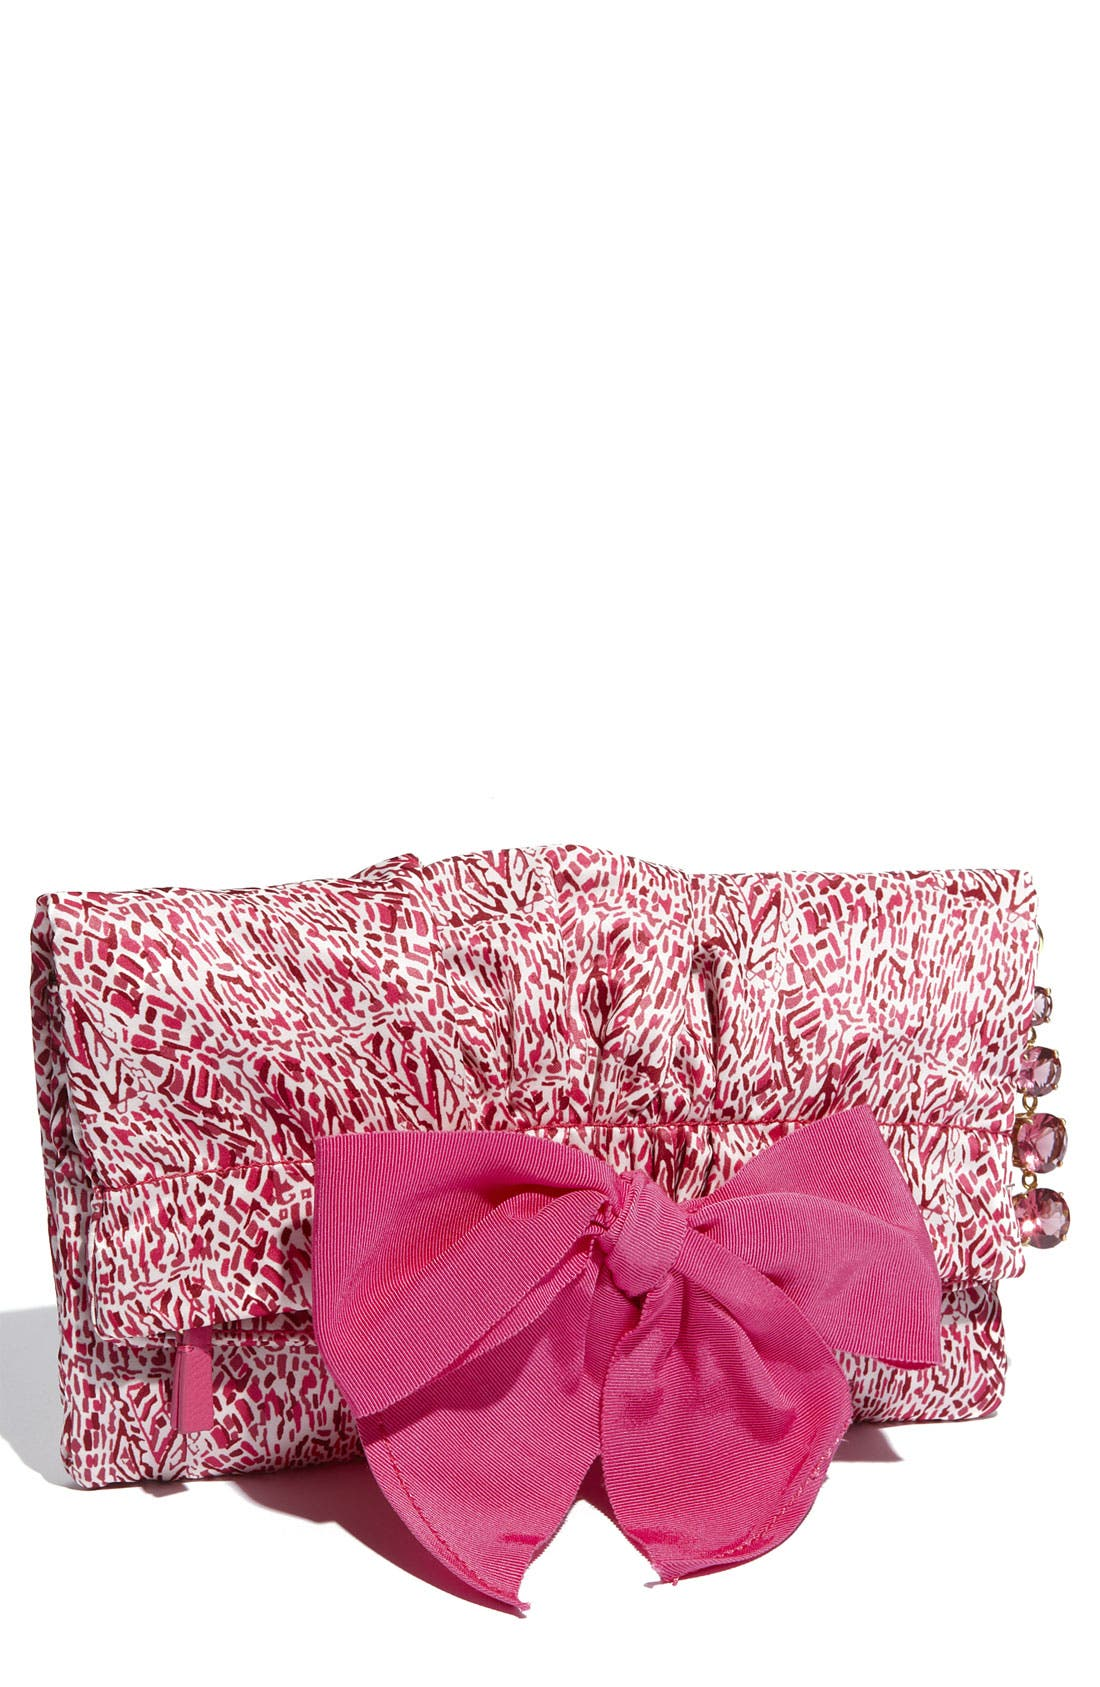 Alternate Image 1 Selected - Juicy Couture 'Madame Daydreamer' Clutch